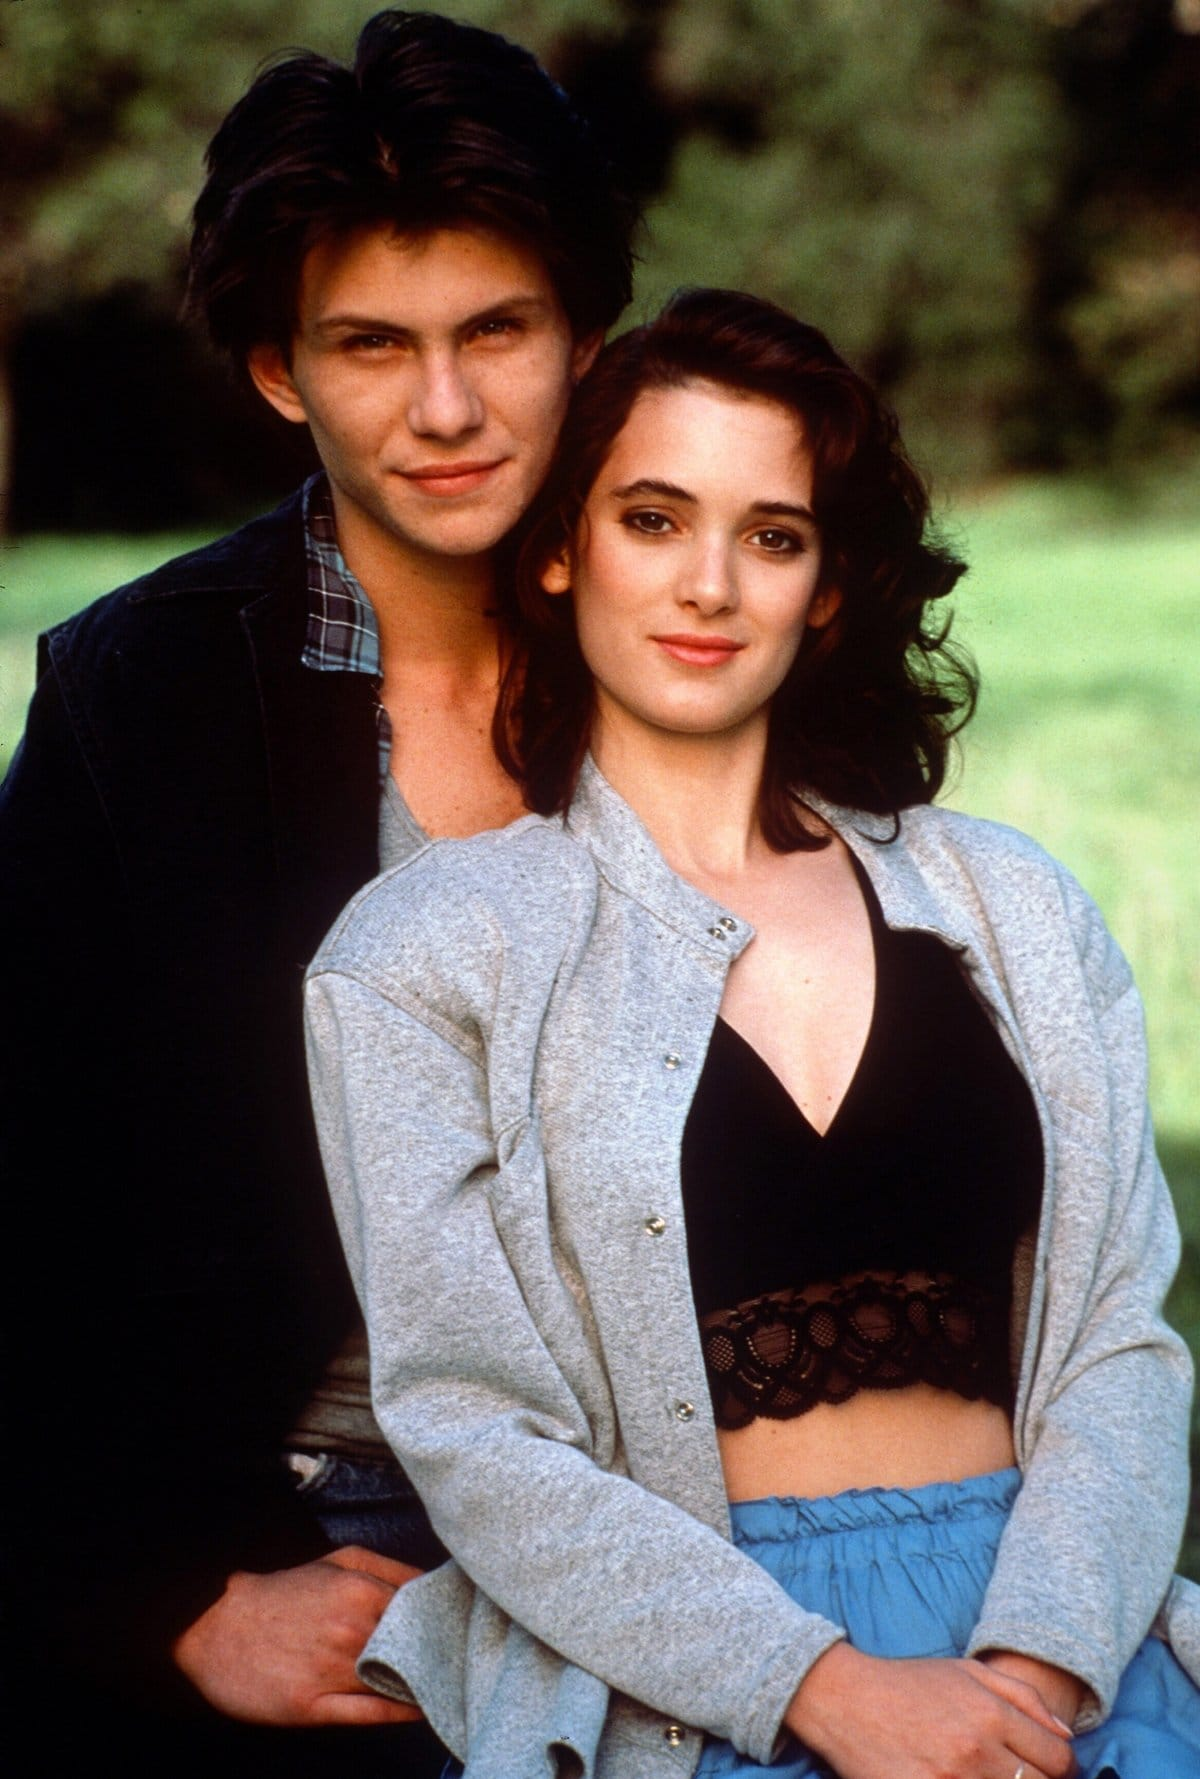 Christian Slater and Winona Ryder fell in love after meeting on the set of Heathers